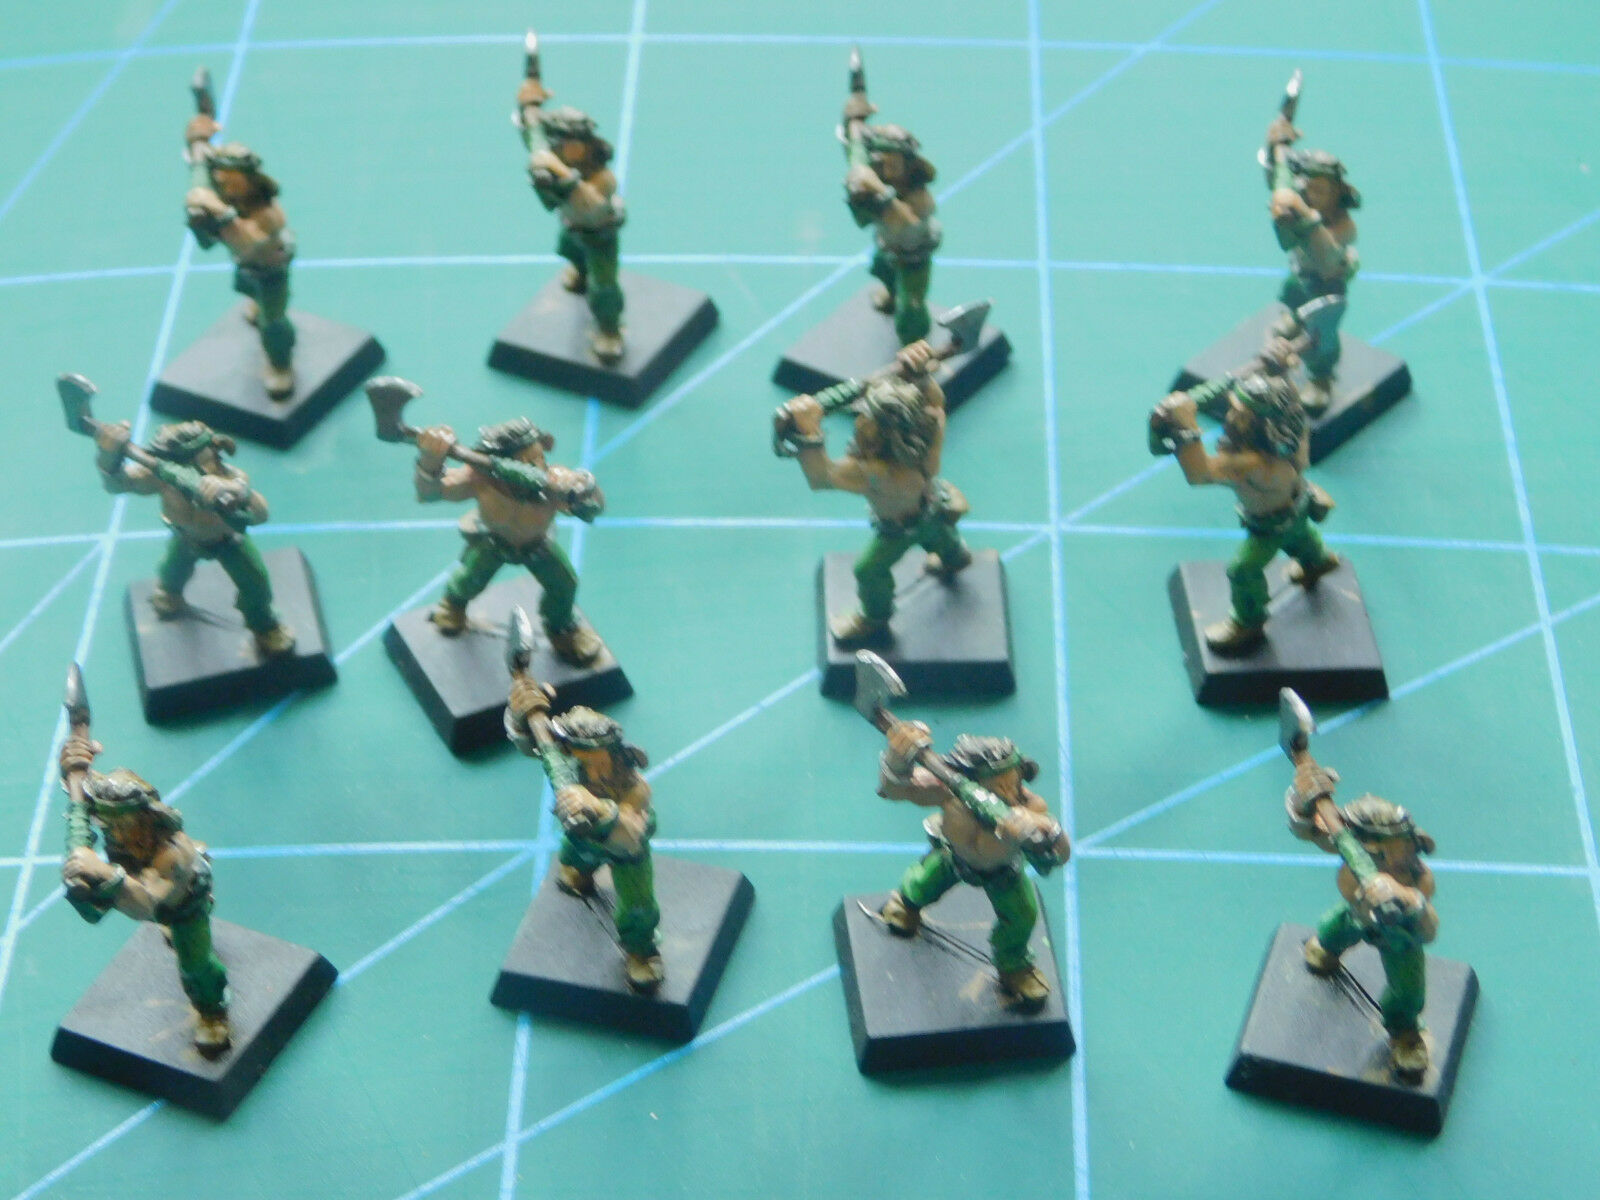 12 warhammer 40k dungeon dragons warrior soldier fighter metal figures